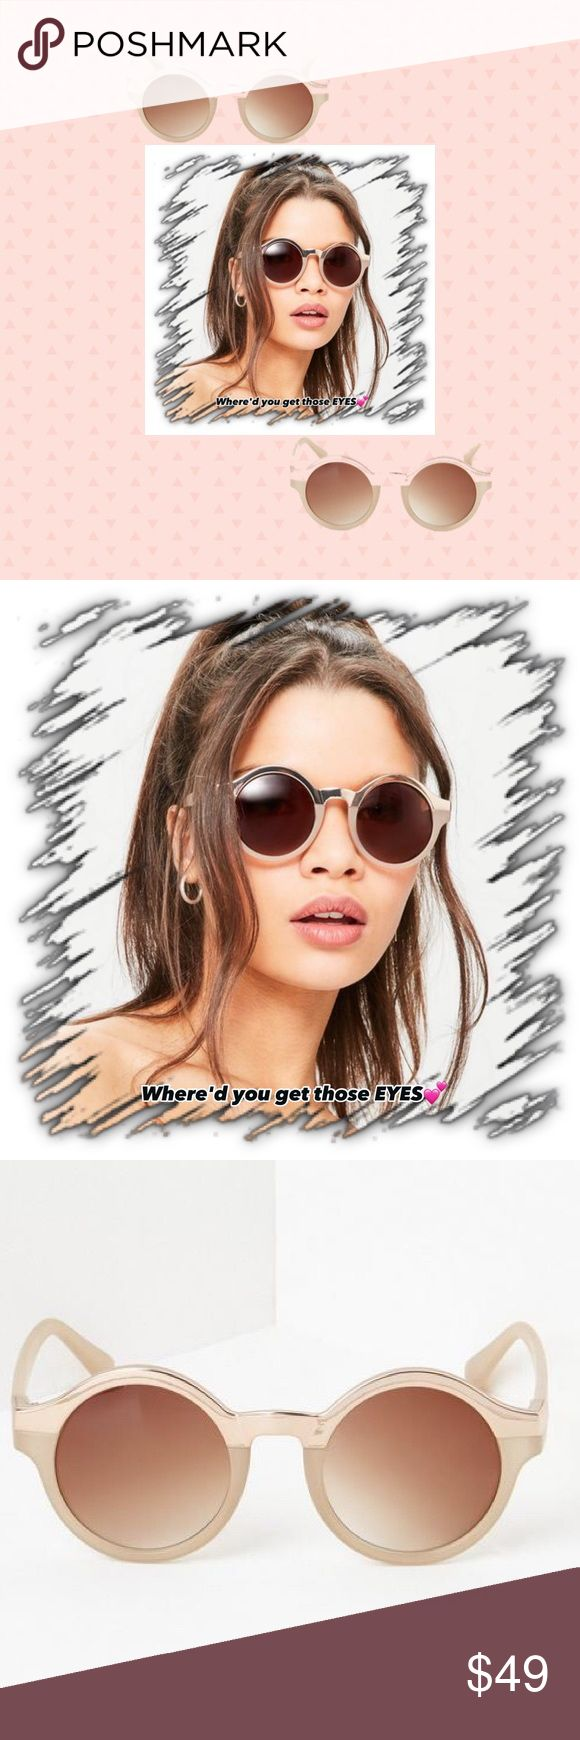 💋Sexy Nude & 1/2 Metal Sunnies/Ovdrsized Round! 💋Nude Tone/1/2 Gold Metal Sunnies/ Will elevate your style game wearing these super sleek sunglasses in a nude hue-featuring rounded design & half metal details. Resin/Gold metal/Brown Ombre Lenes that protect ur peepers in style! These Beauties will have YOU getting all the LOOKS at the pool/on the beach! All sunnies provide full uva/uvb protection/come w their own microfiber carry case/cleaning cloth + ur choice of Case? FlexTop Close or…